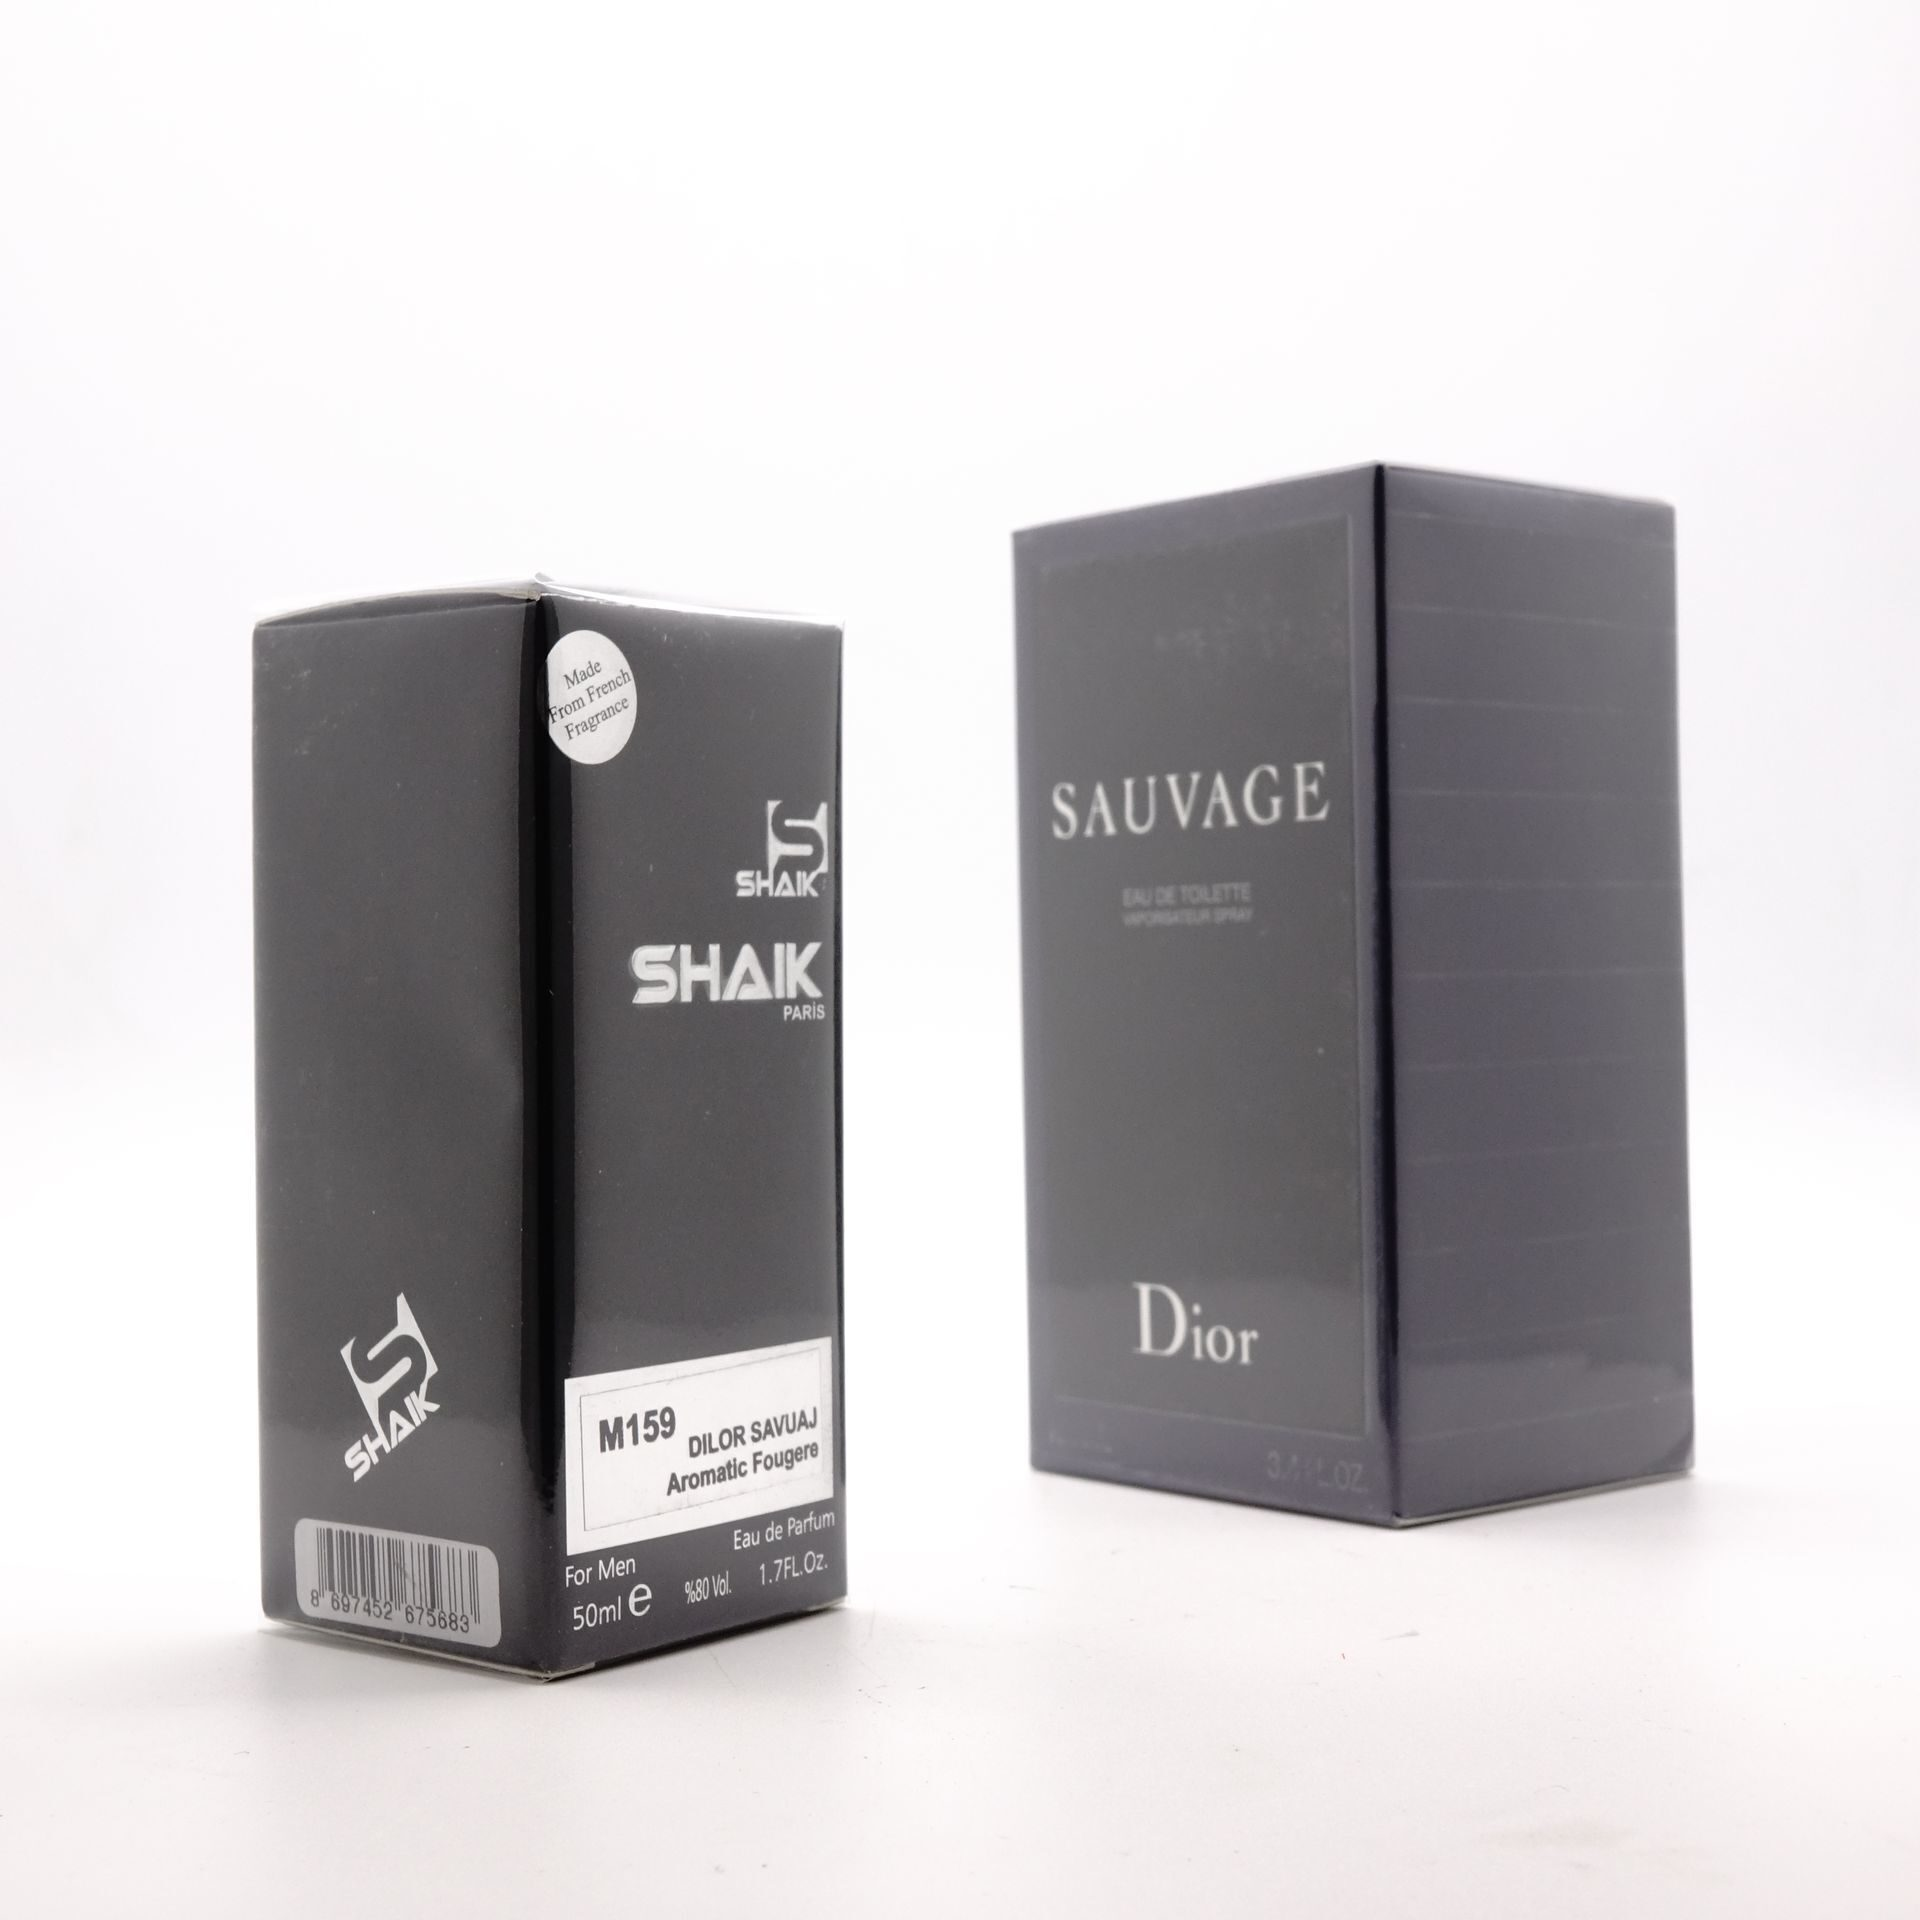 SHAIK M 159 (DIOR SAUVAGE FOR MEN) 50ml